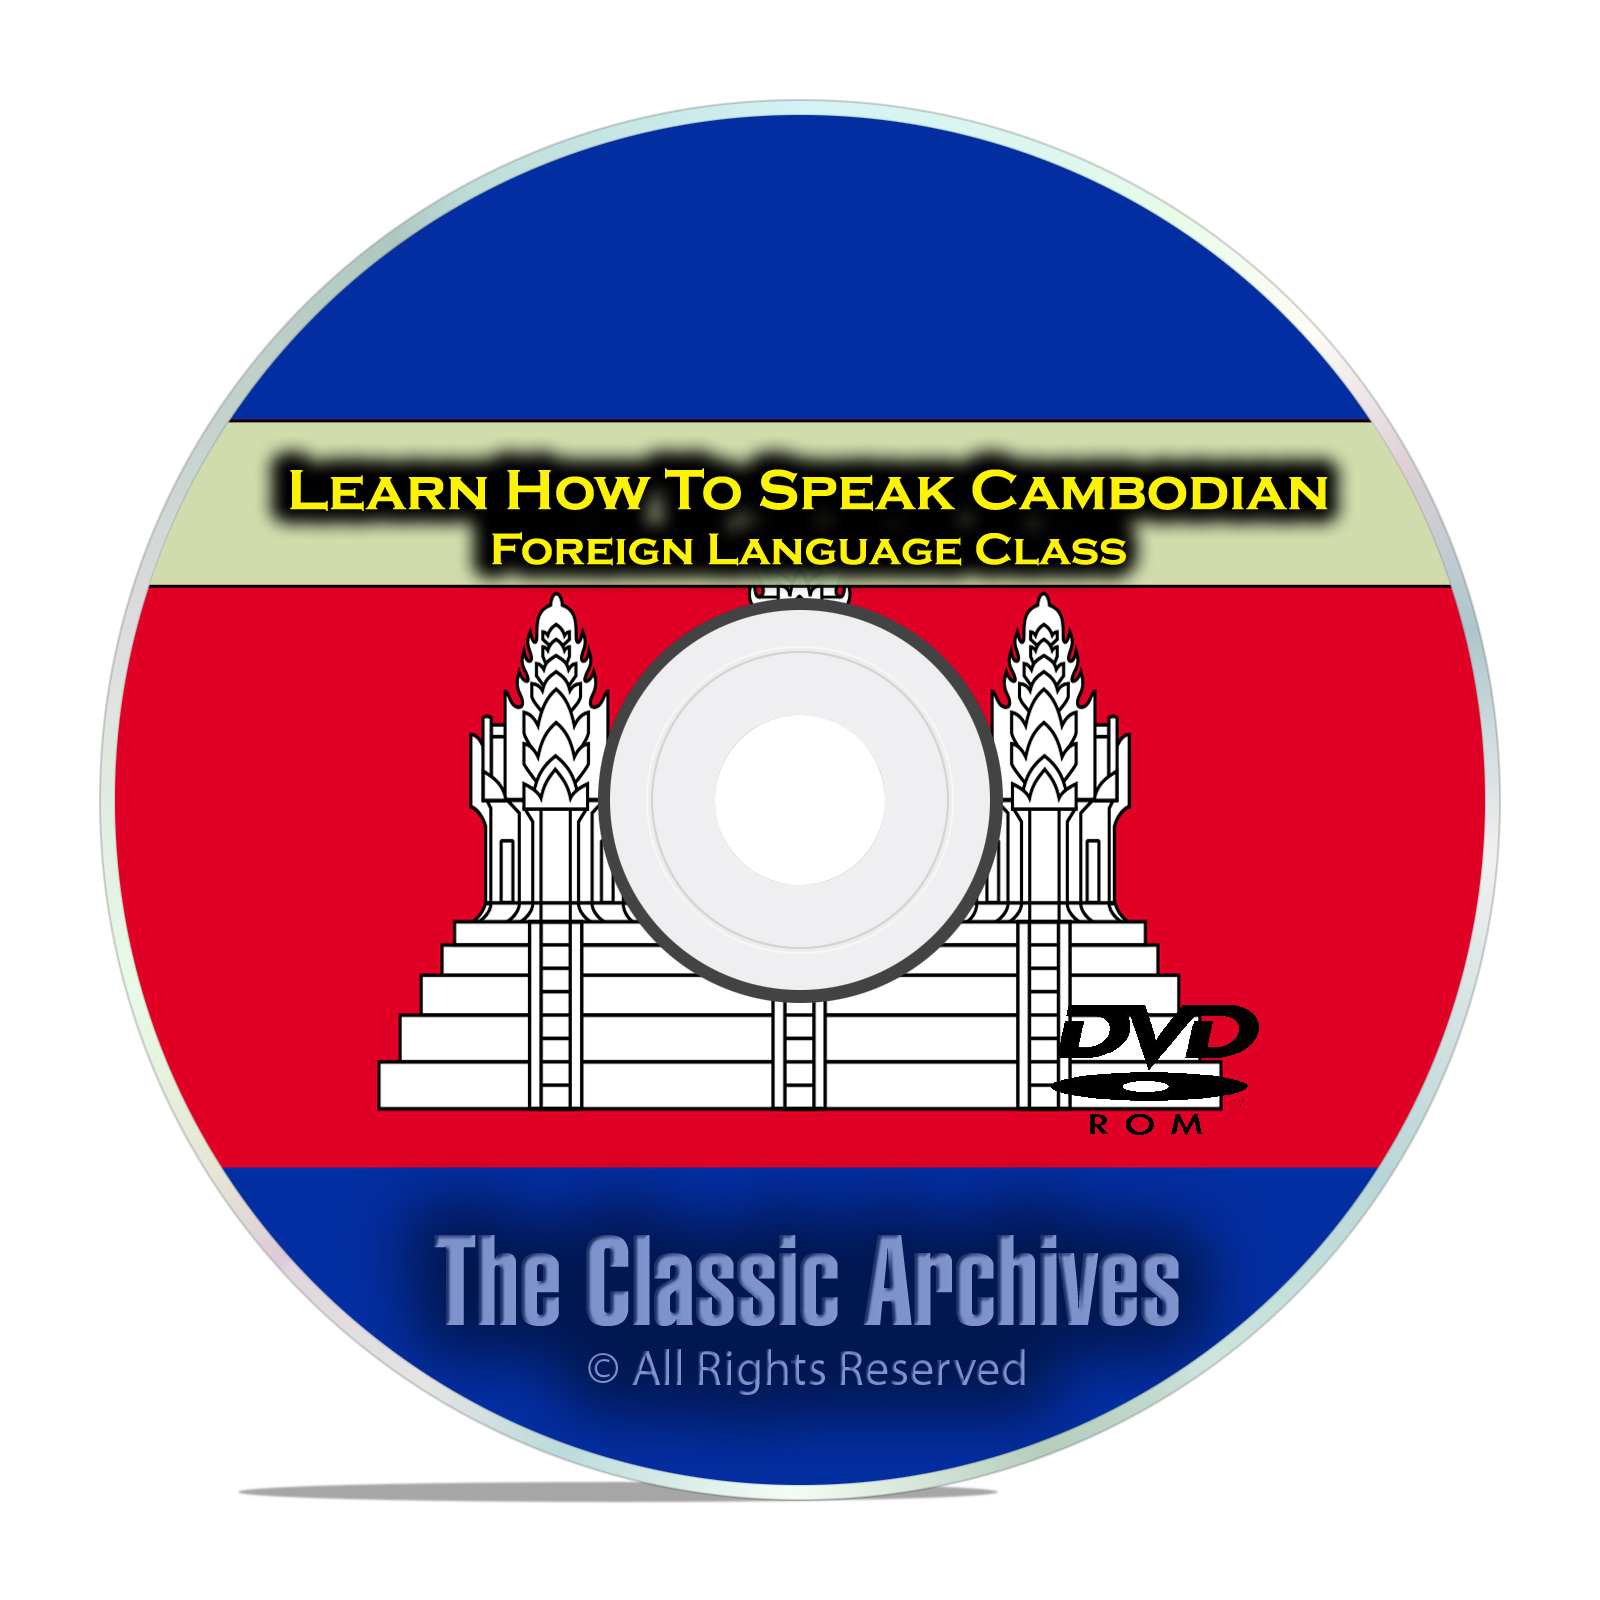 Learn How To Speak Cambodian, Fast Foreign Language Training Course, DVD